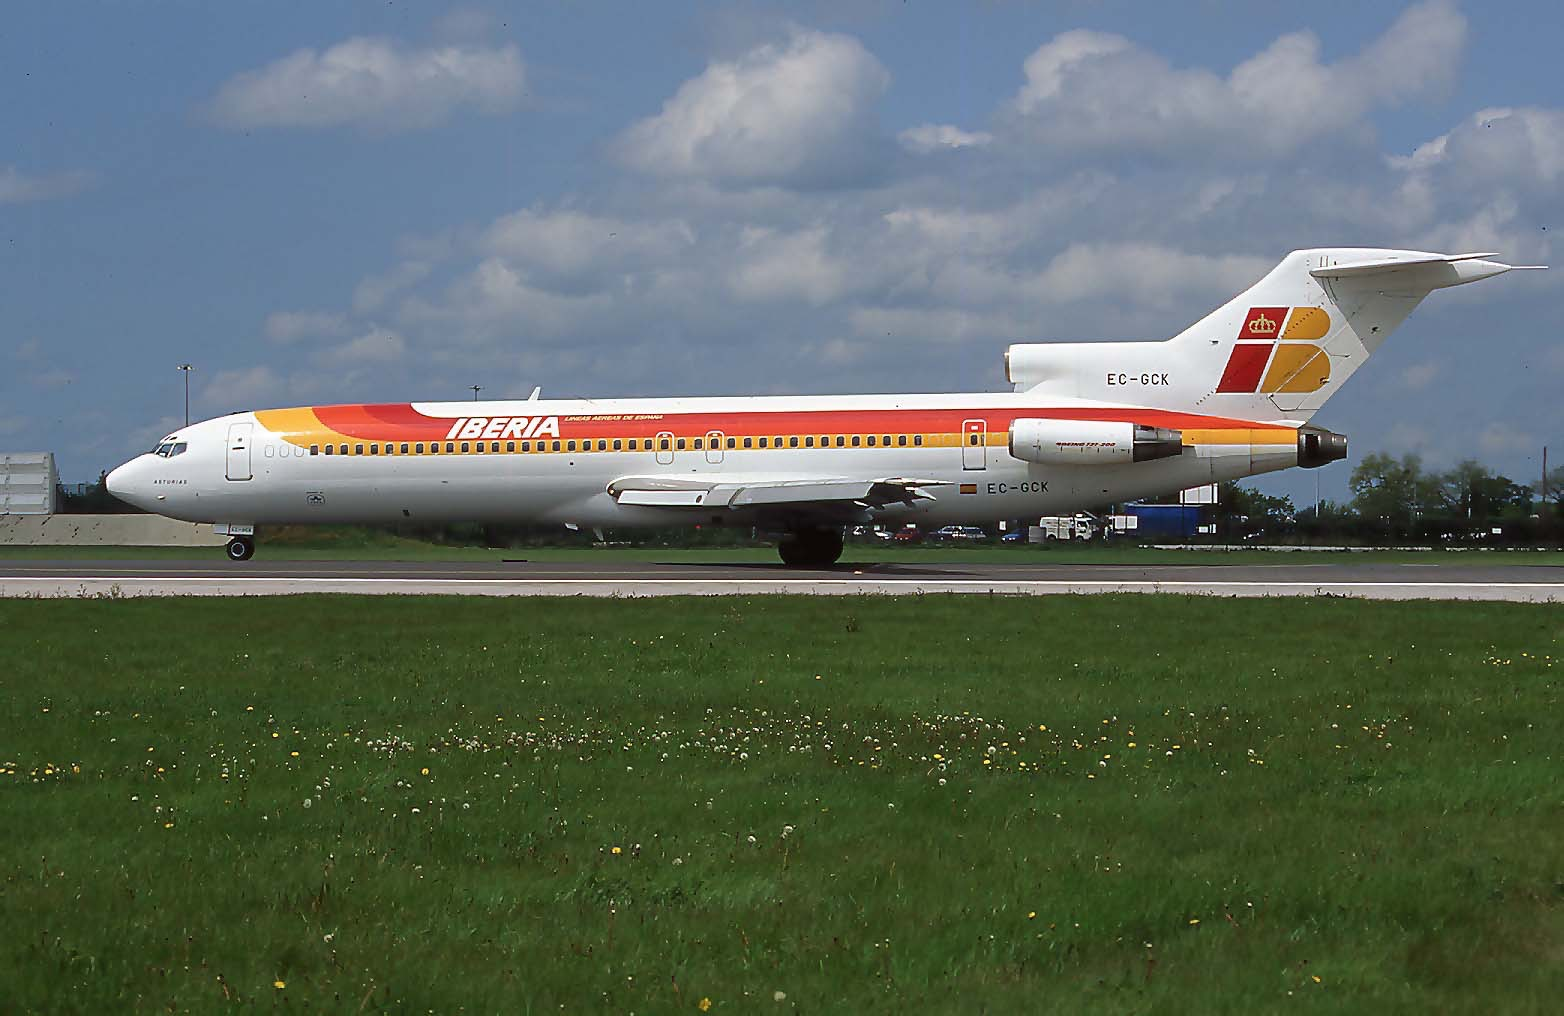 A fine shot of Iberia B727-200 EC-GCK (Note dual registration) on 24th May 1996. This particular aircraft was last reported as operating for Nigerian airline Albarka Air as 5N-IMM in November 2001 although is believed to have been scrapped at Lagos shortly afterwards. Photo:Paul Rowland